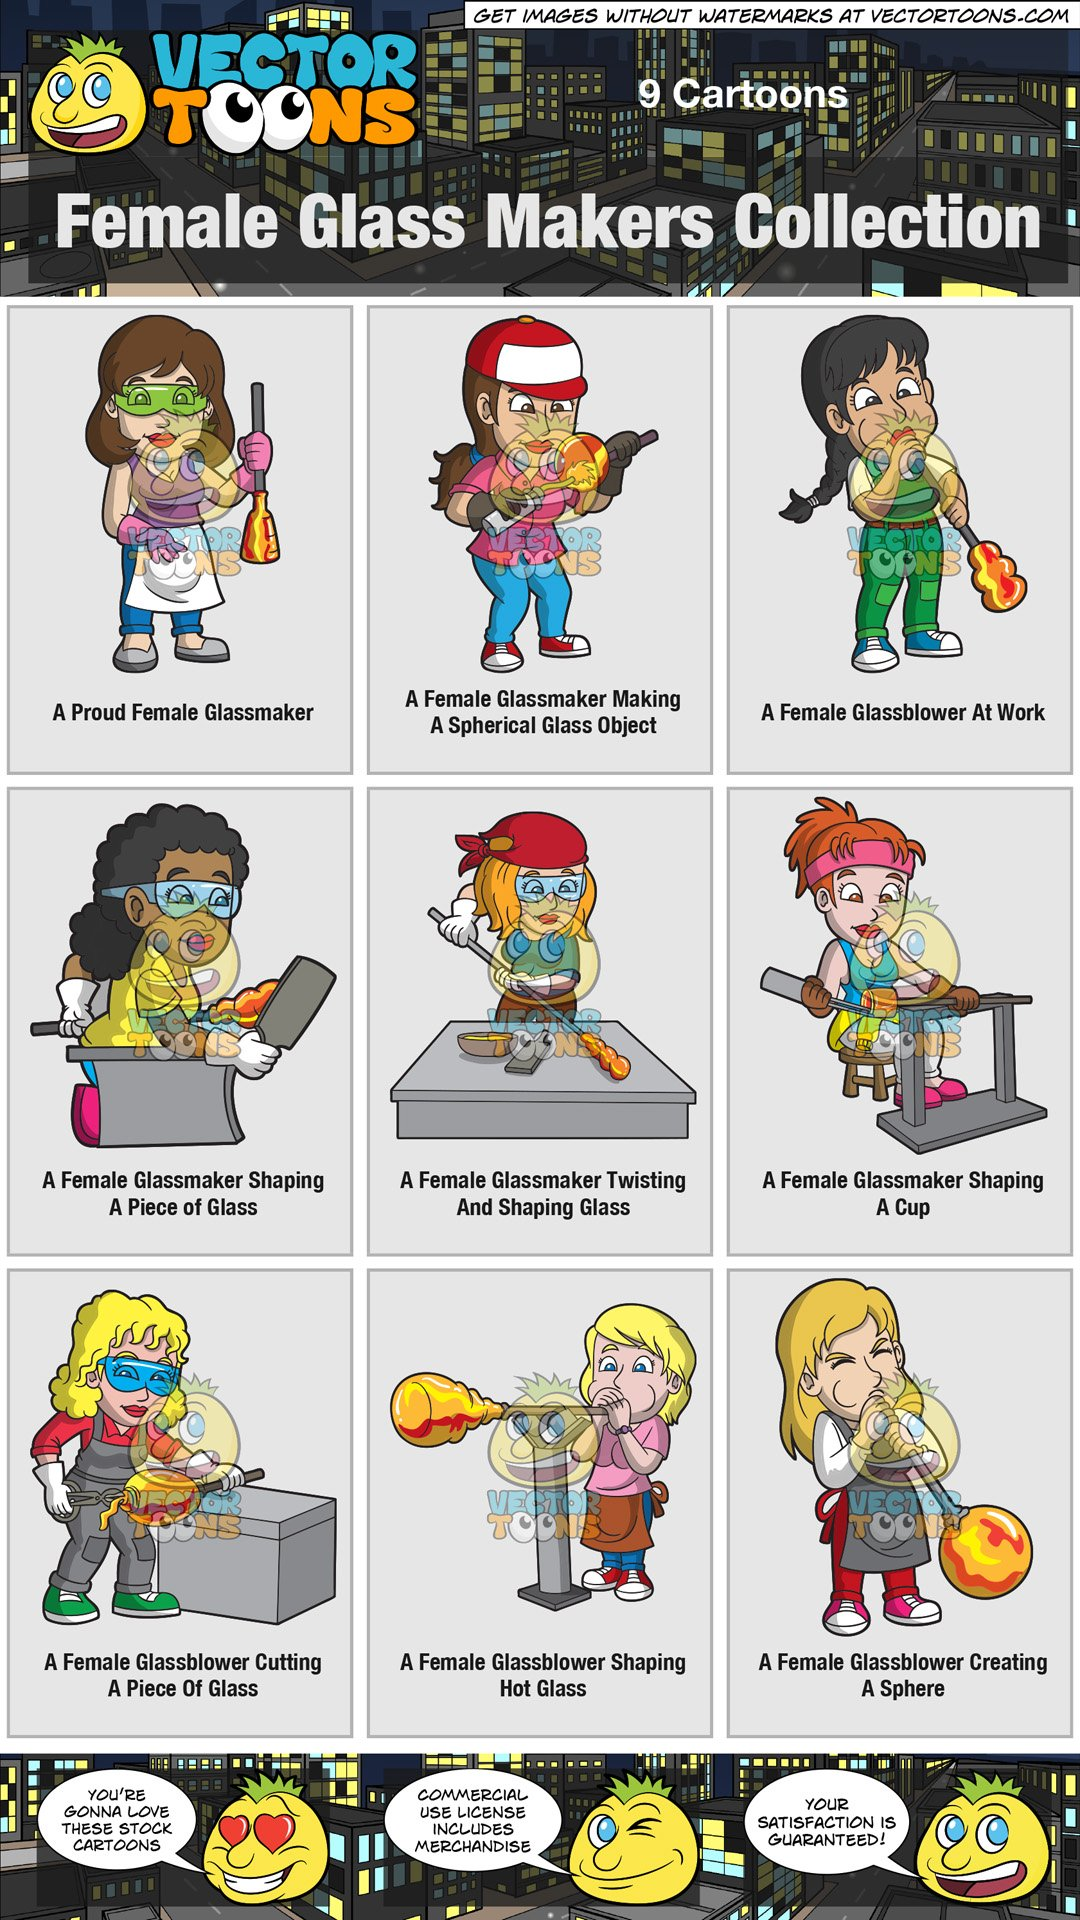 Goggles clipart female glass. Makers collection